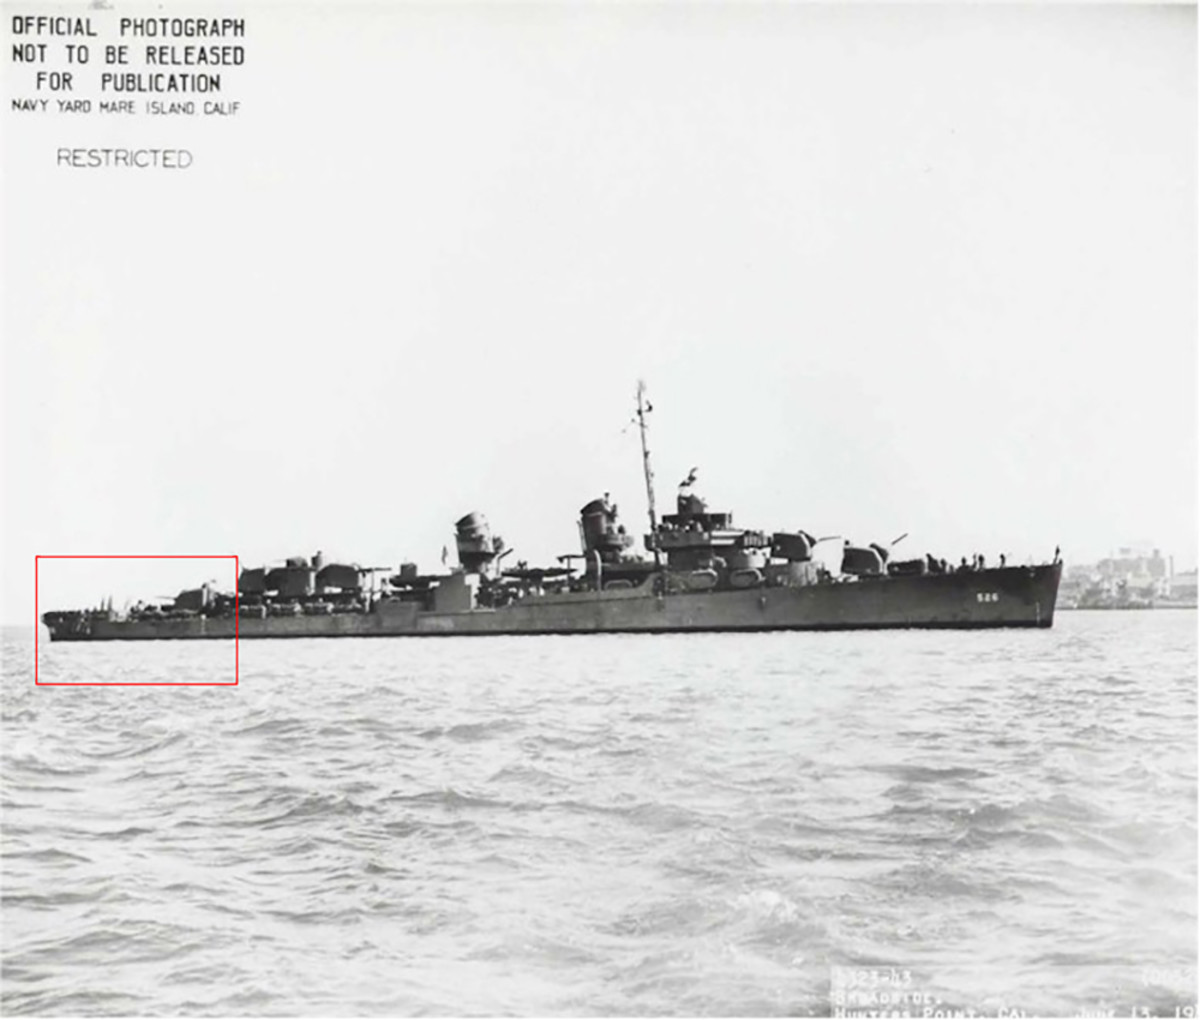 Historical image of the USS Abner Read. The red box indicates that section of the vessel that was blown off and sunk when the vessel struck a mine on August 18, 1943.